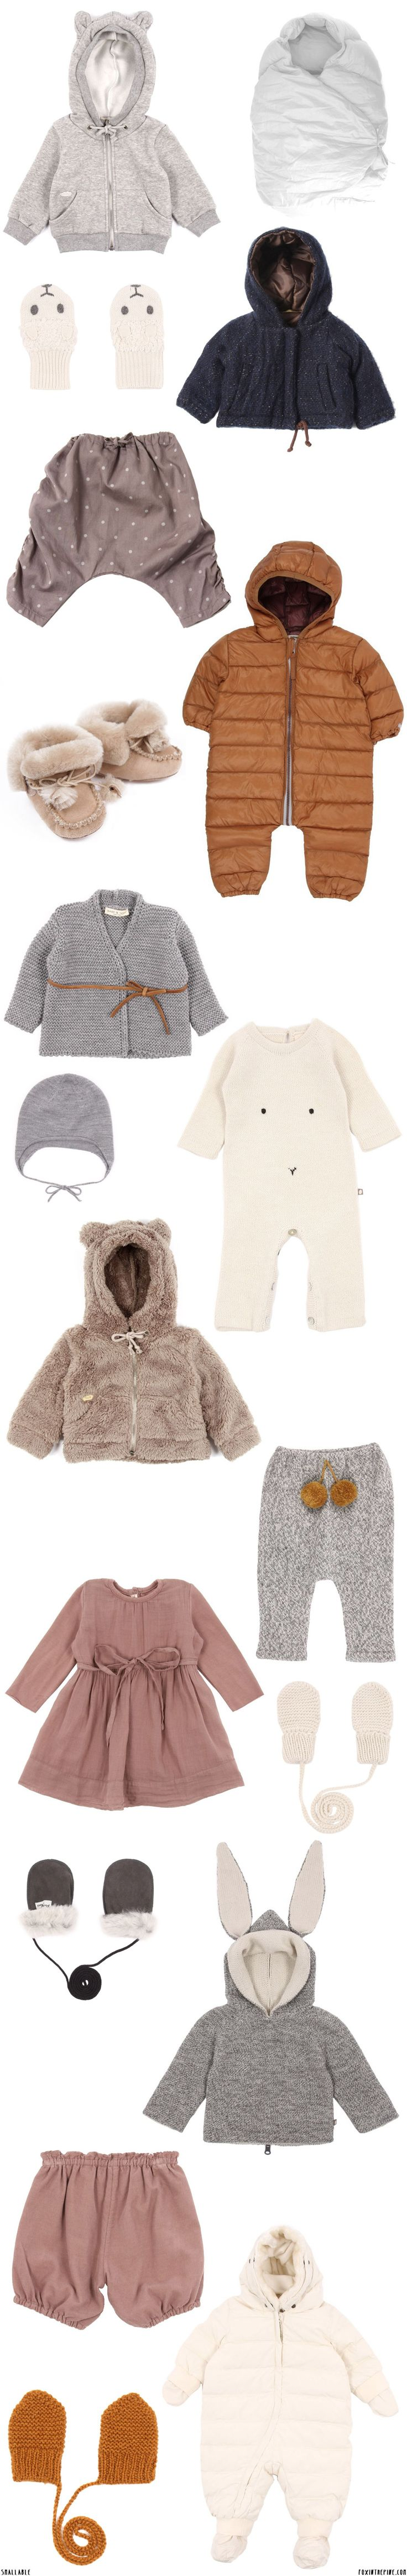 Smallable children's clothing